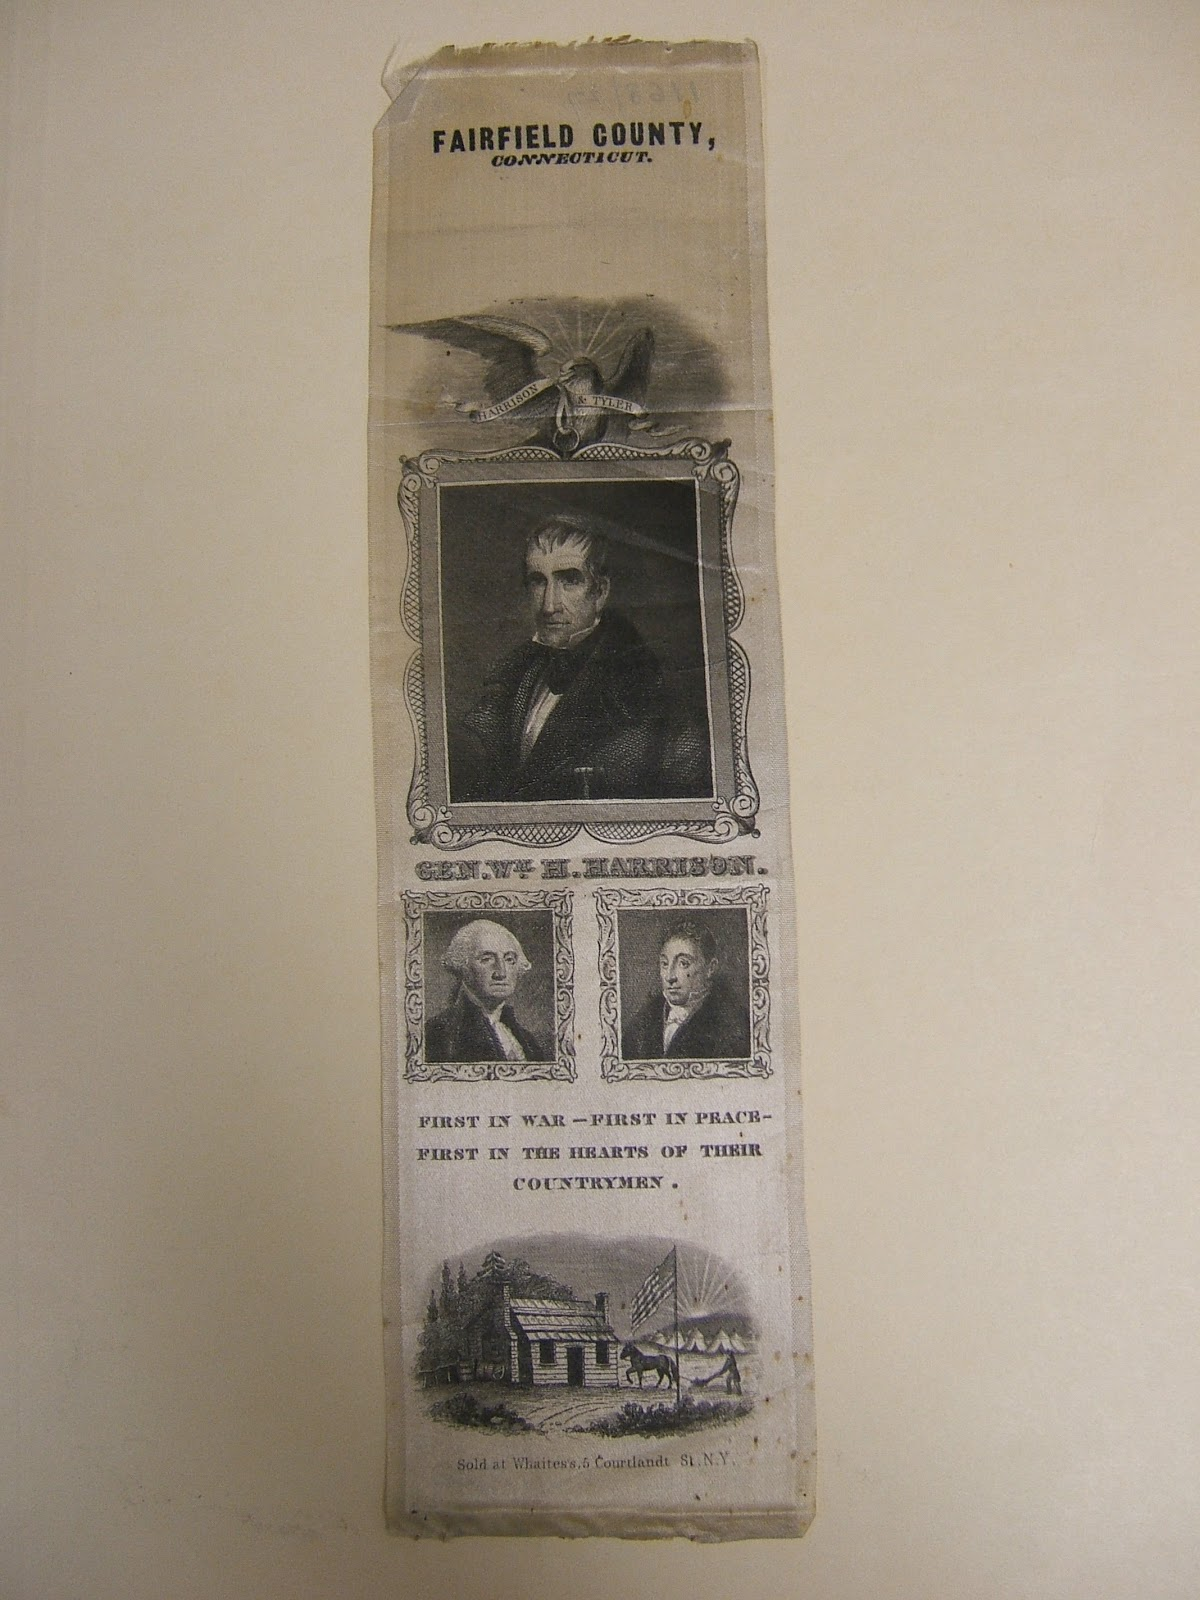 Very Impressive portraiture of Campaign ribbon. Silk. 1840. Rosenb a ch Museum & Library. 2006.7650 with #7A6A51 color and 1200x1600 pixels